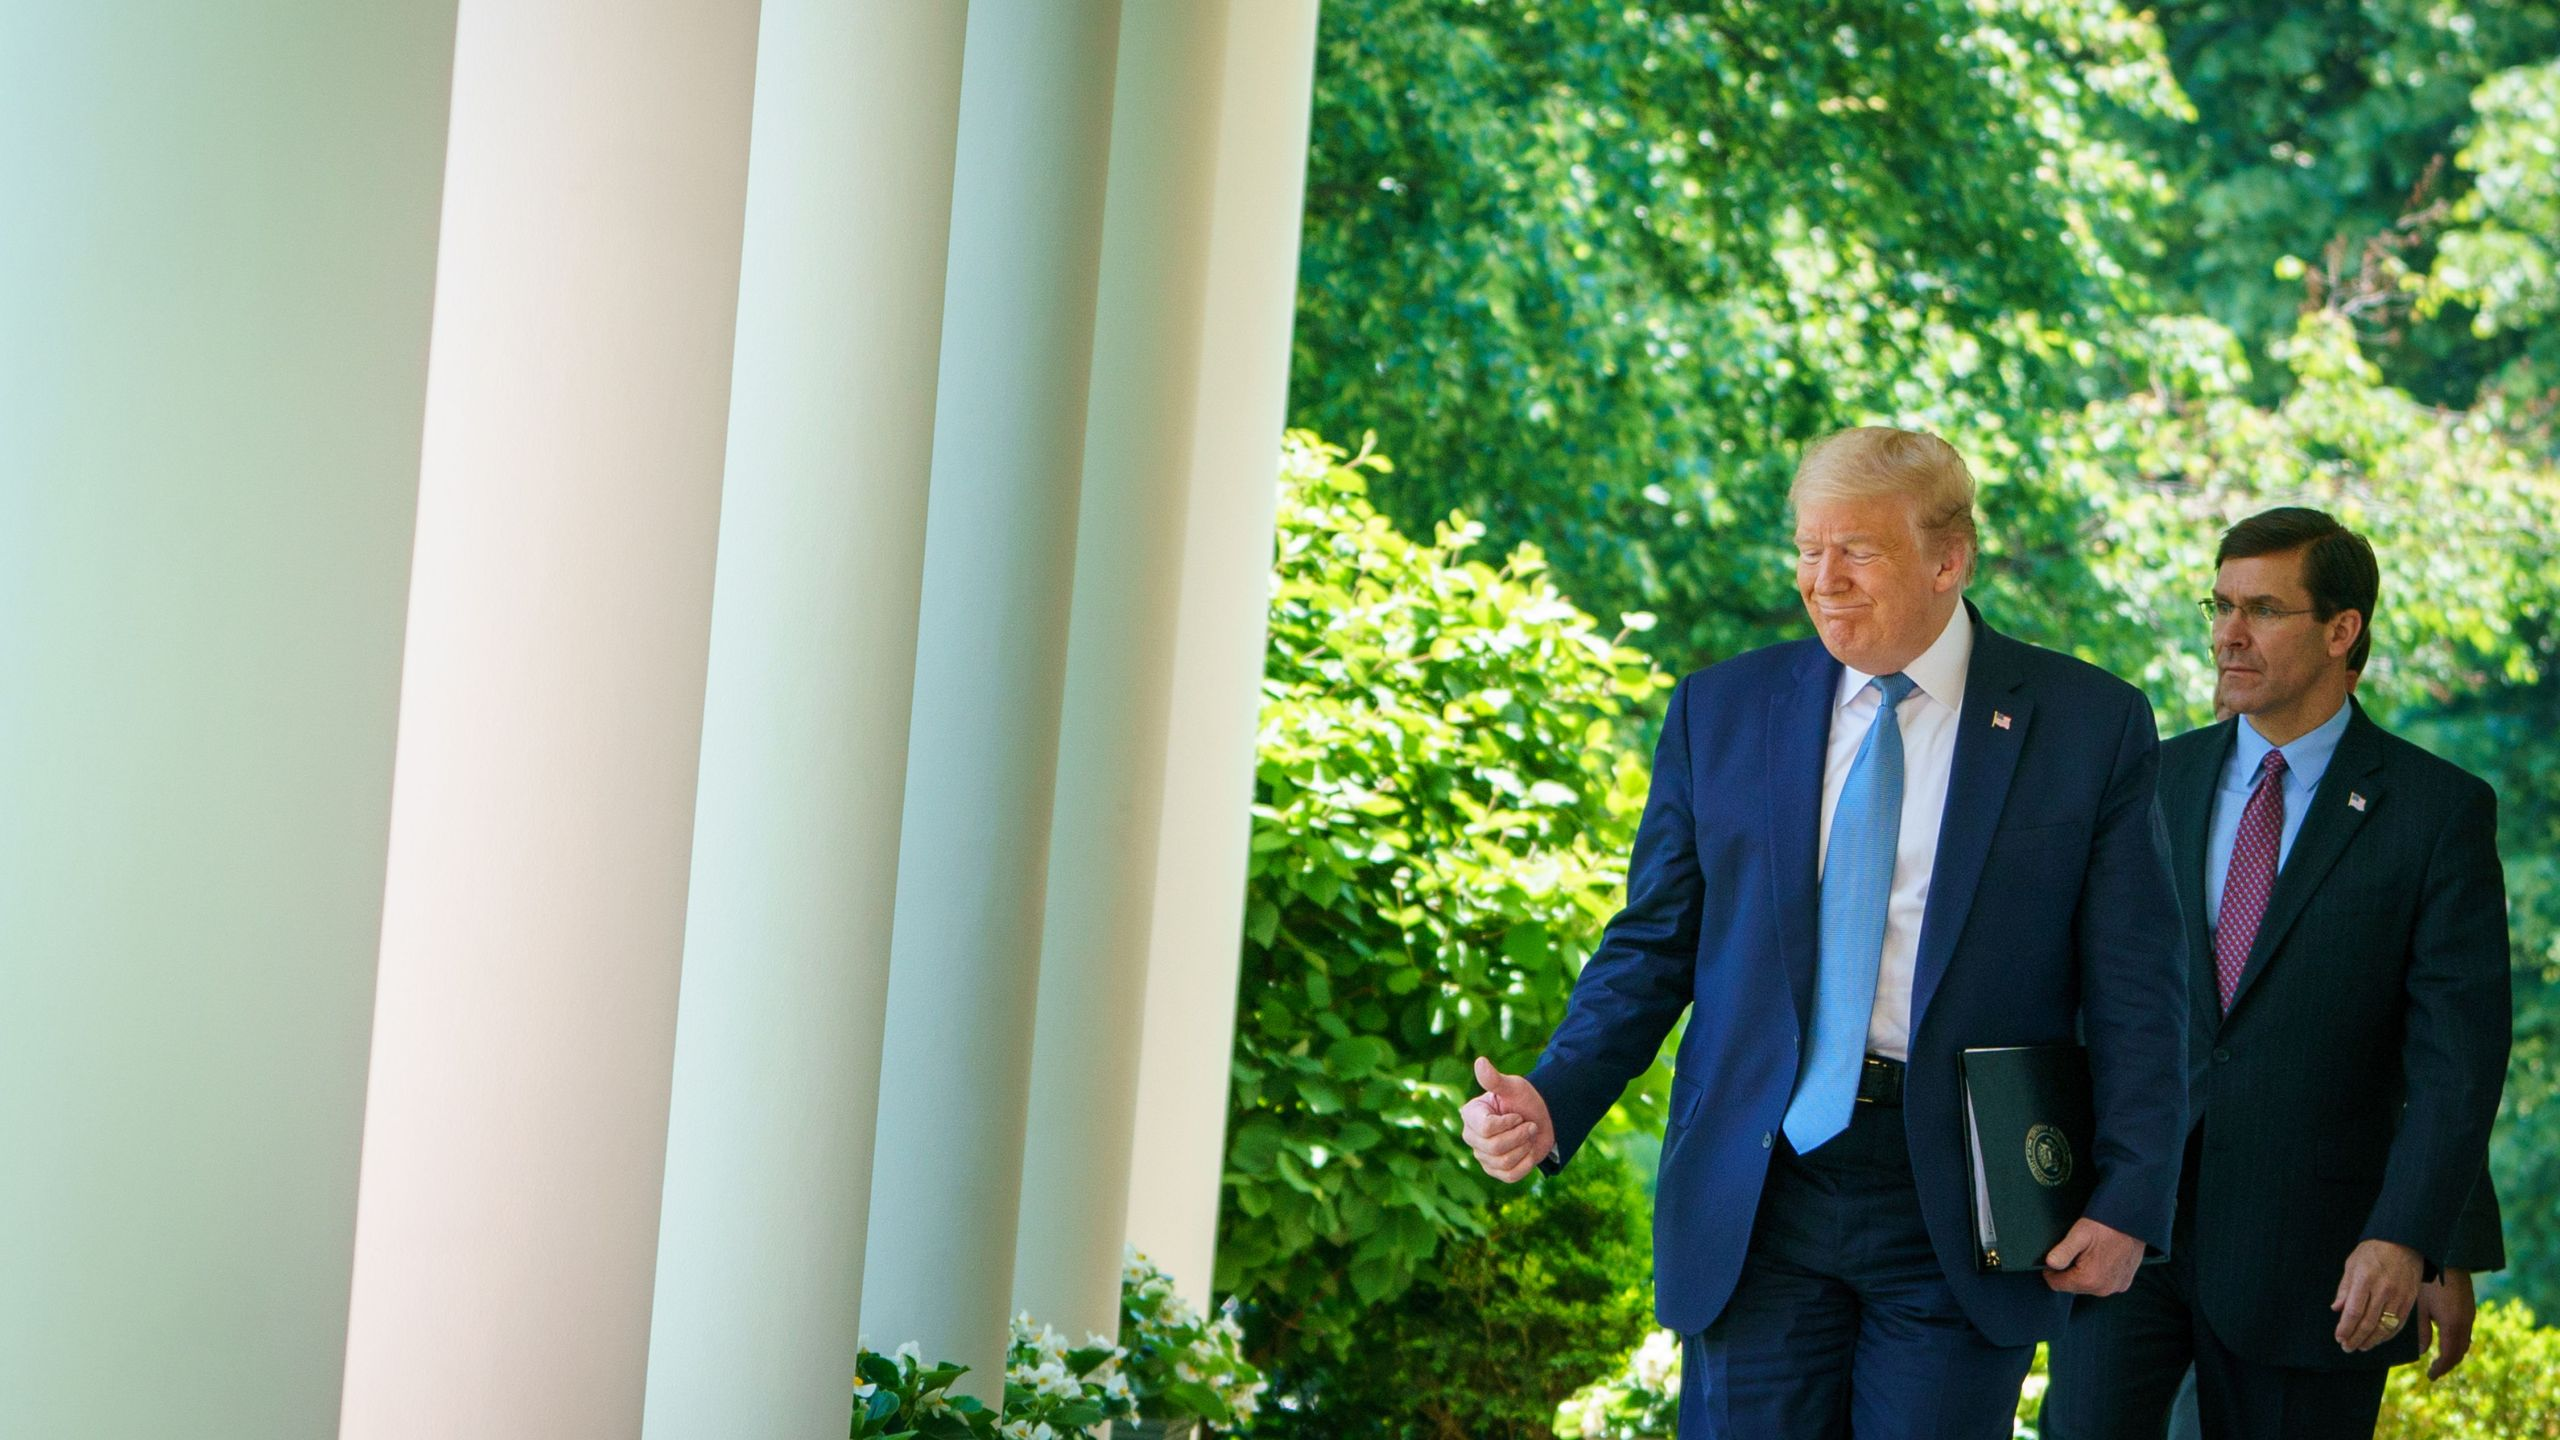 Donald Trump walks with Defense Secretary Mark Esper through the Colonnades at the White House in Washington, D.C. on May 15, 2020. (MANDEL NGAN/AFP via Getty Images)